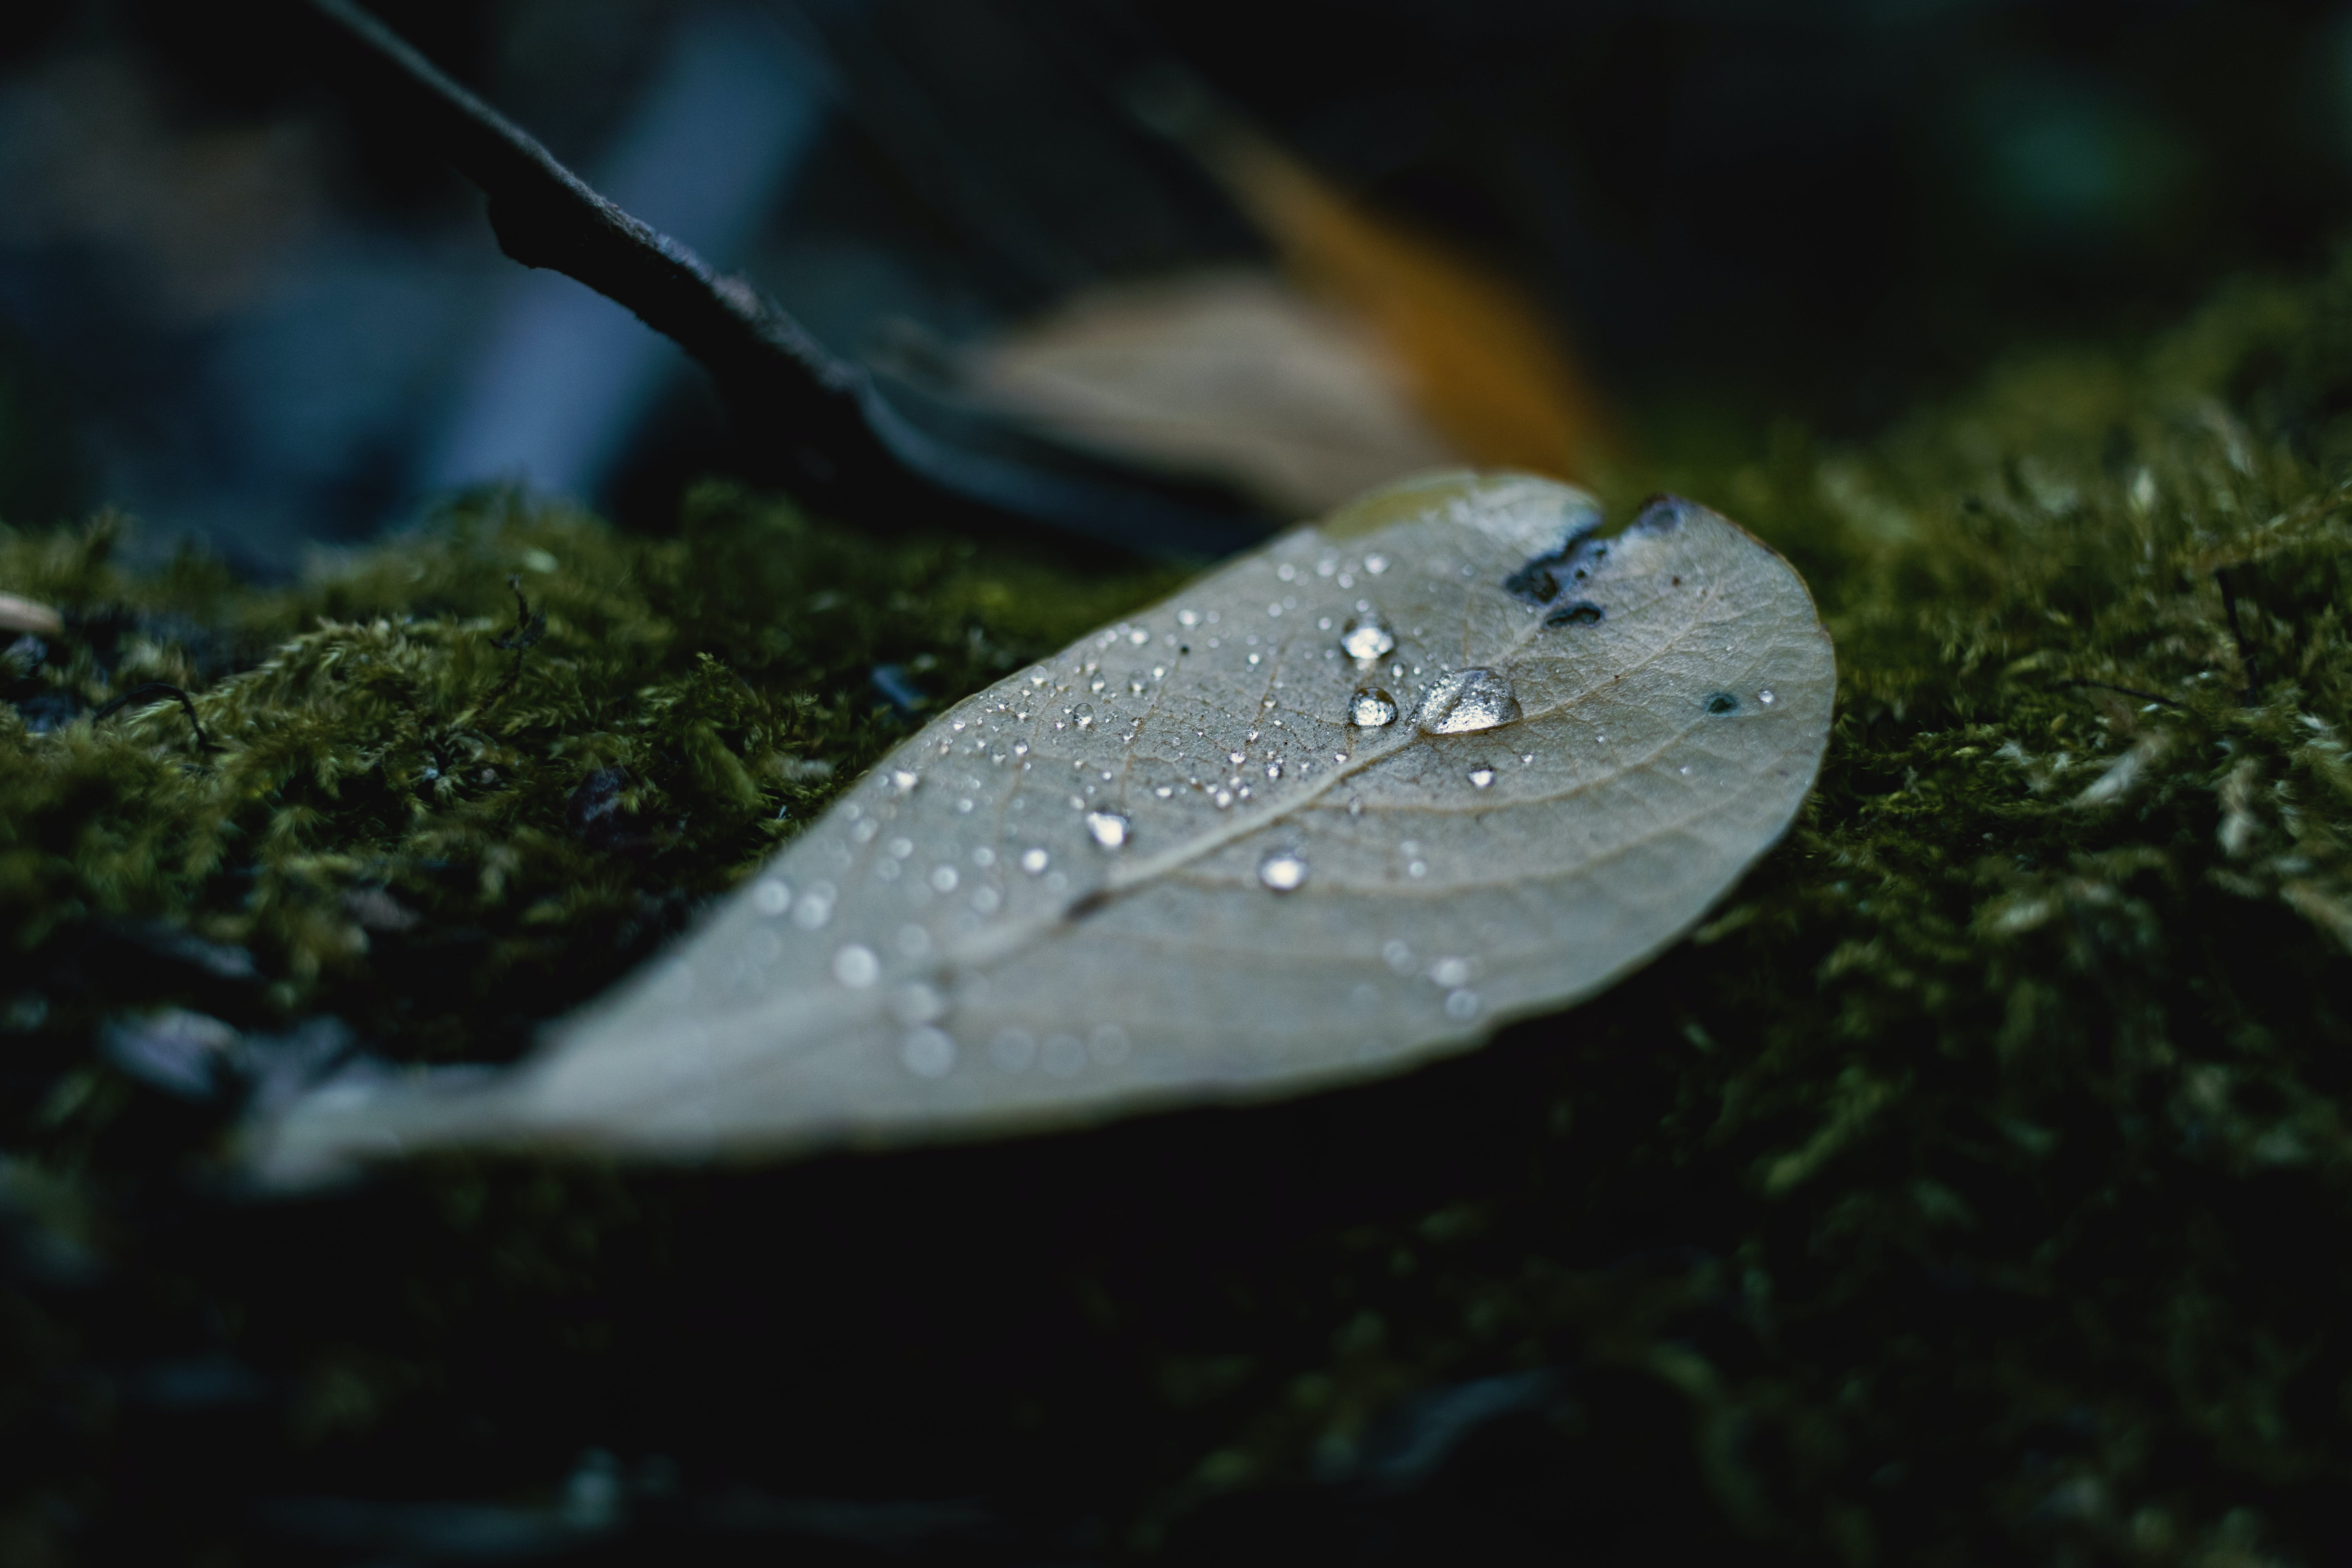 Close-up Photography of Leaf